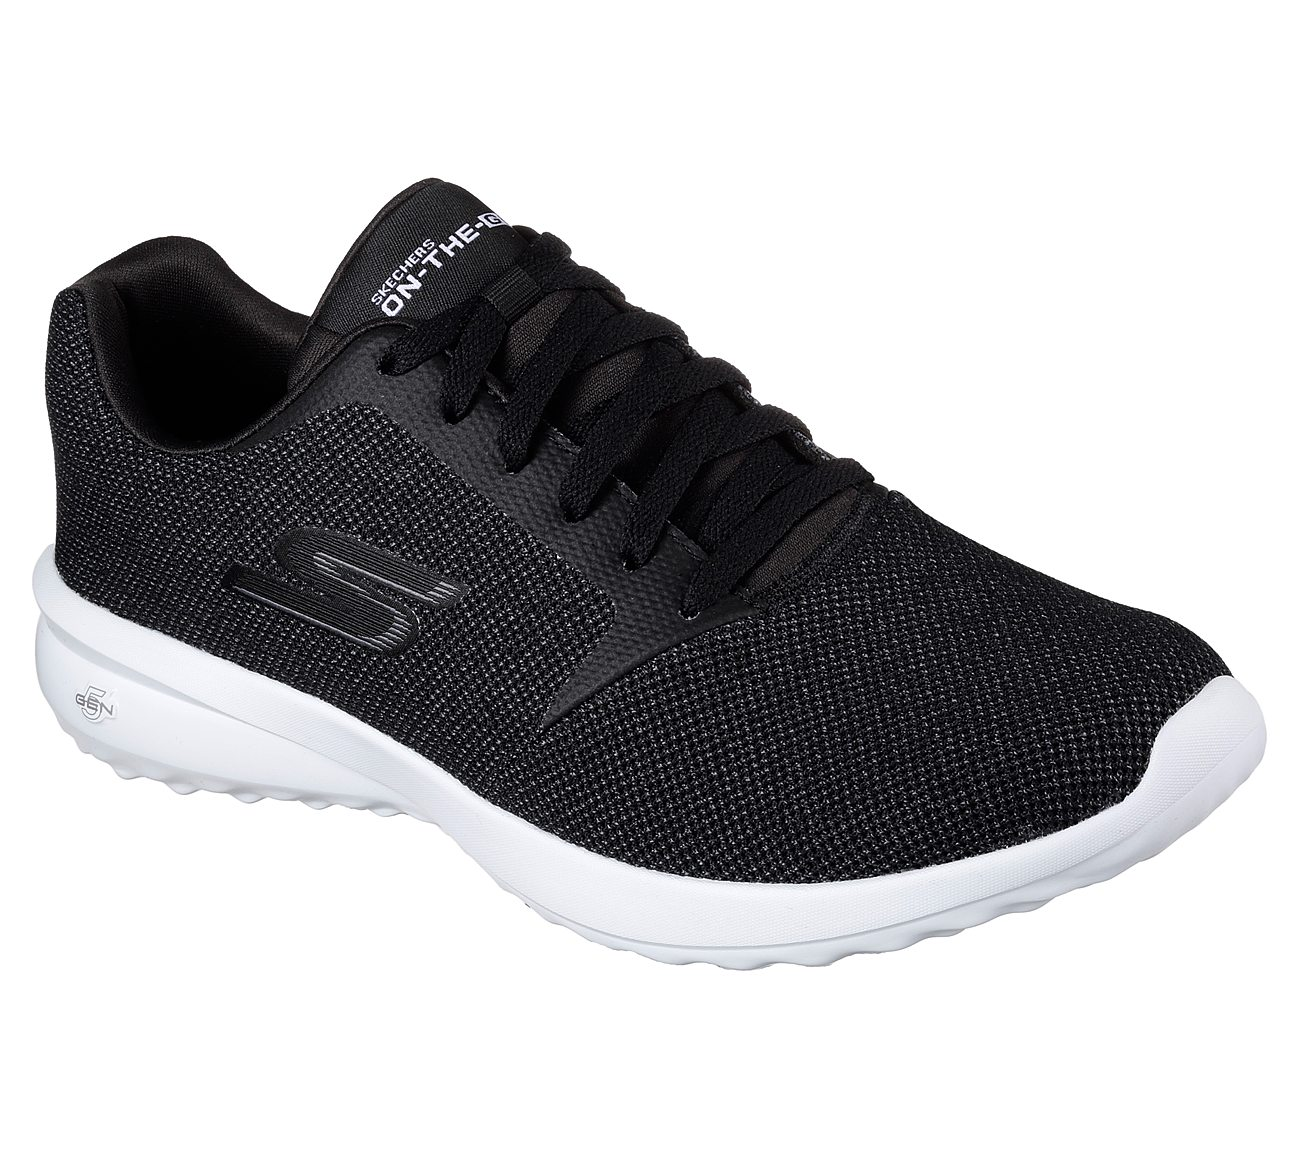 buy skechers skechers on the go city 3 0 skechers performance shoes only. Black Bedroom Furniture Sets. Home Design Ideas